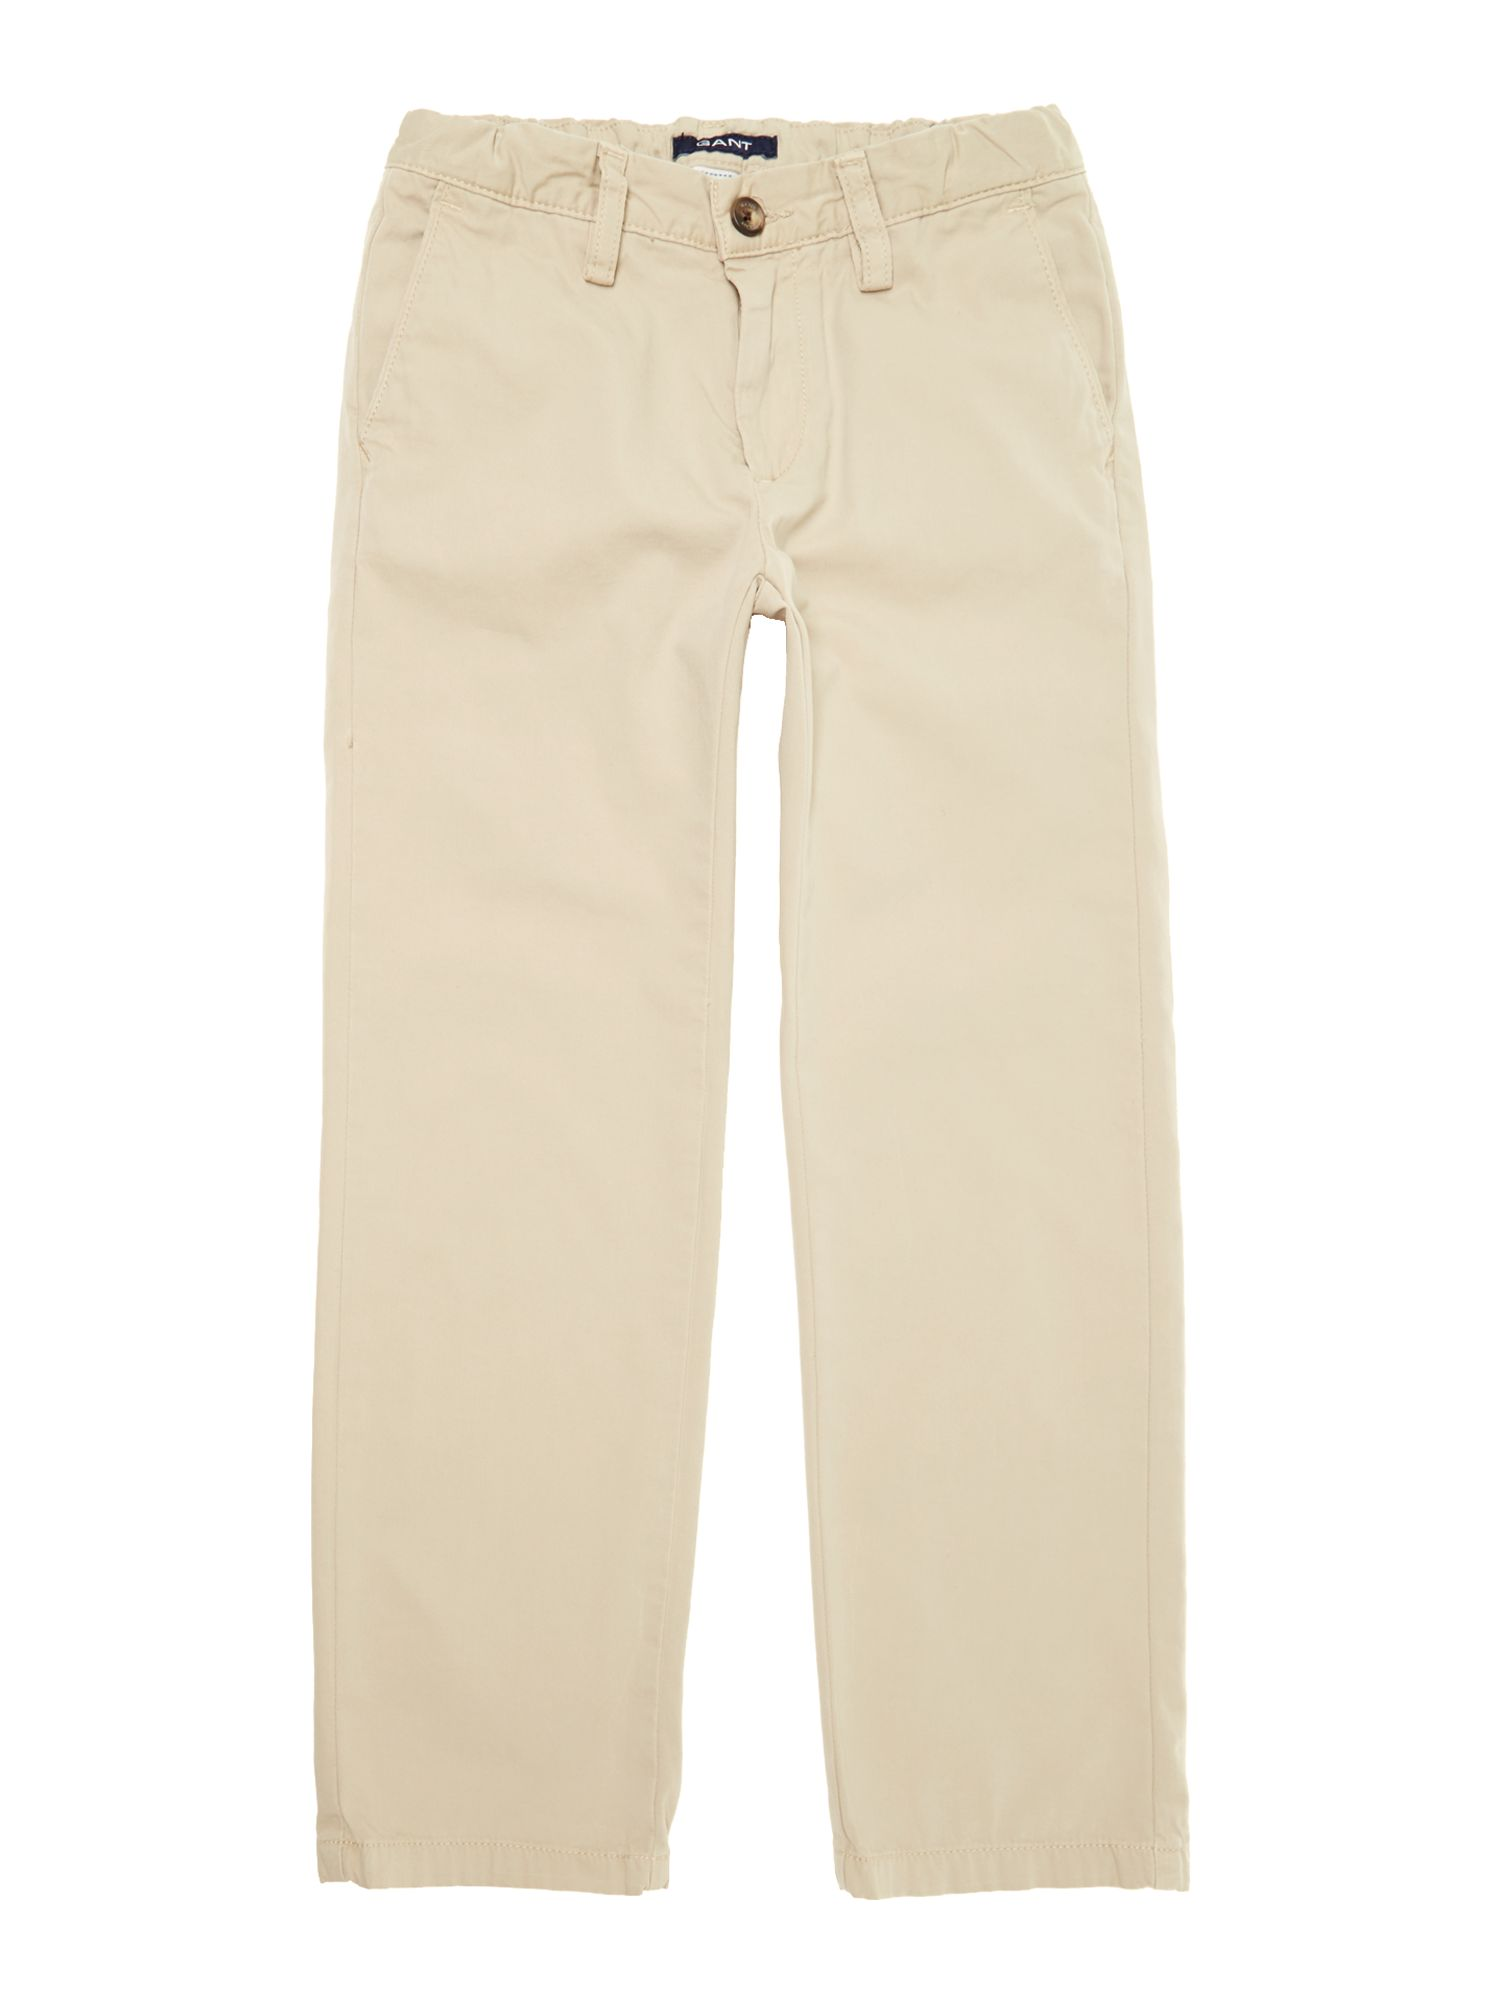 Boys classic chino trousers